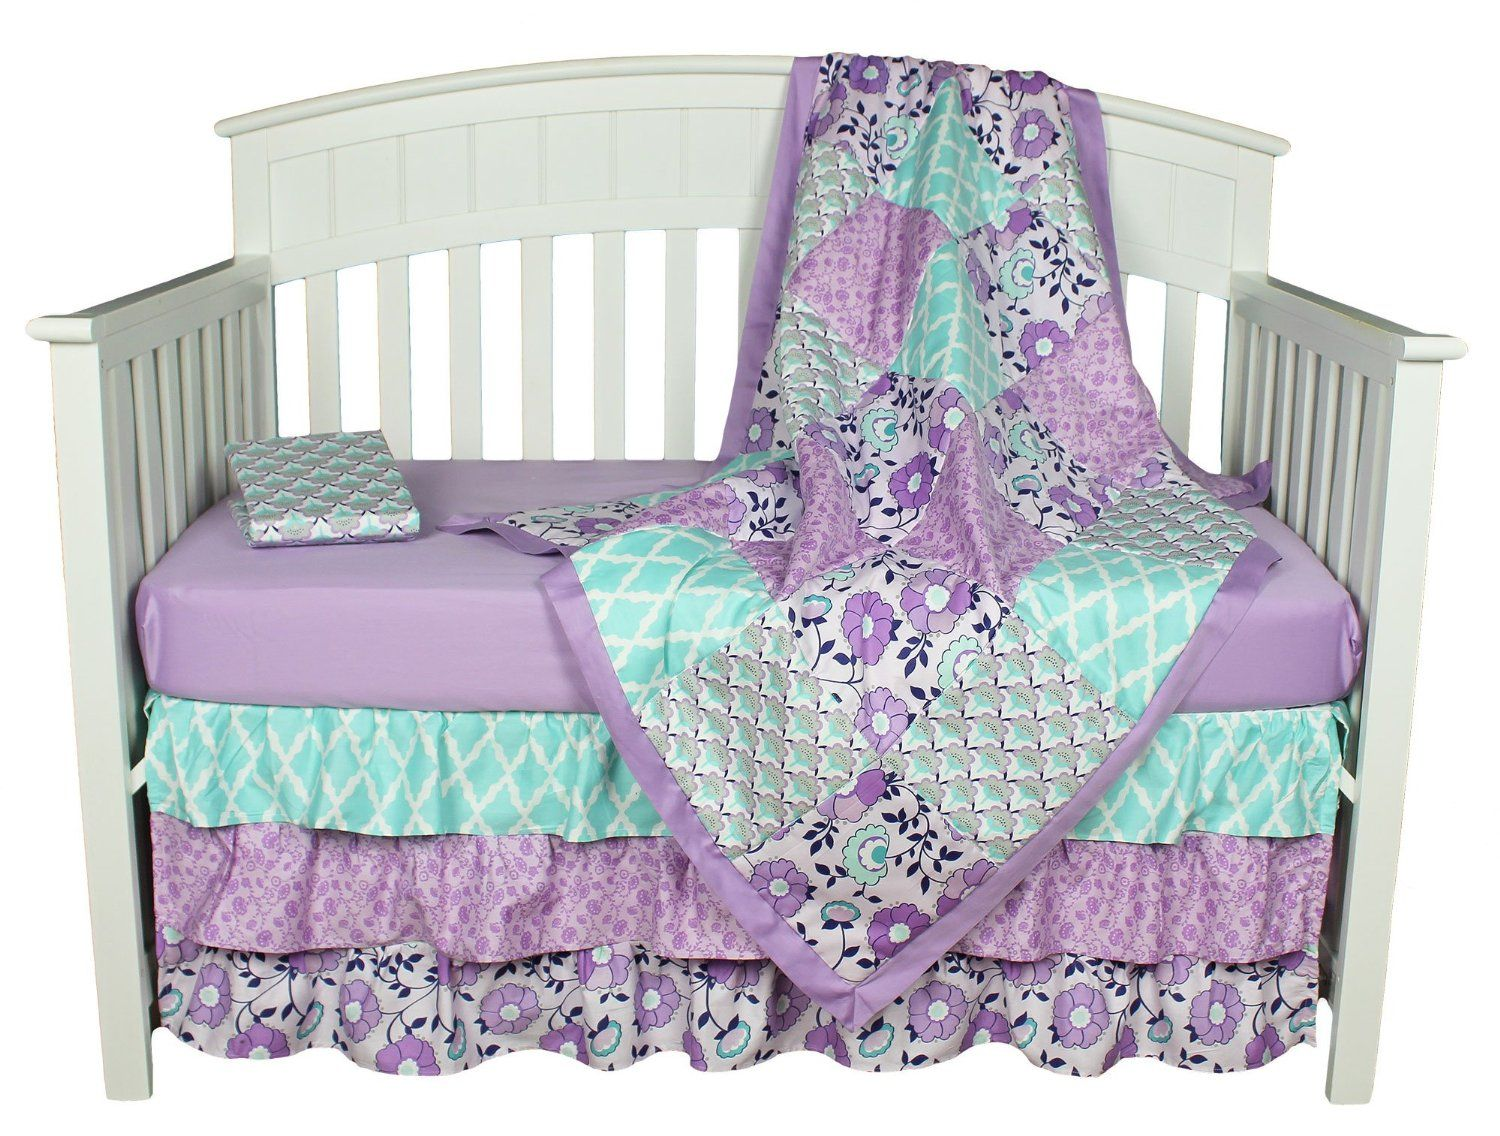 Purple Baby Bedding Zoe 4 In 1 Crib Bedding Set By The Peanut